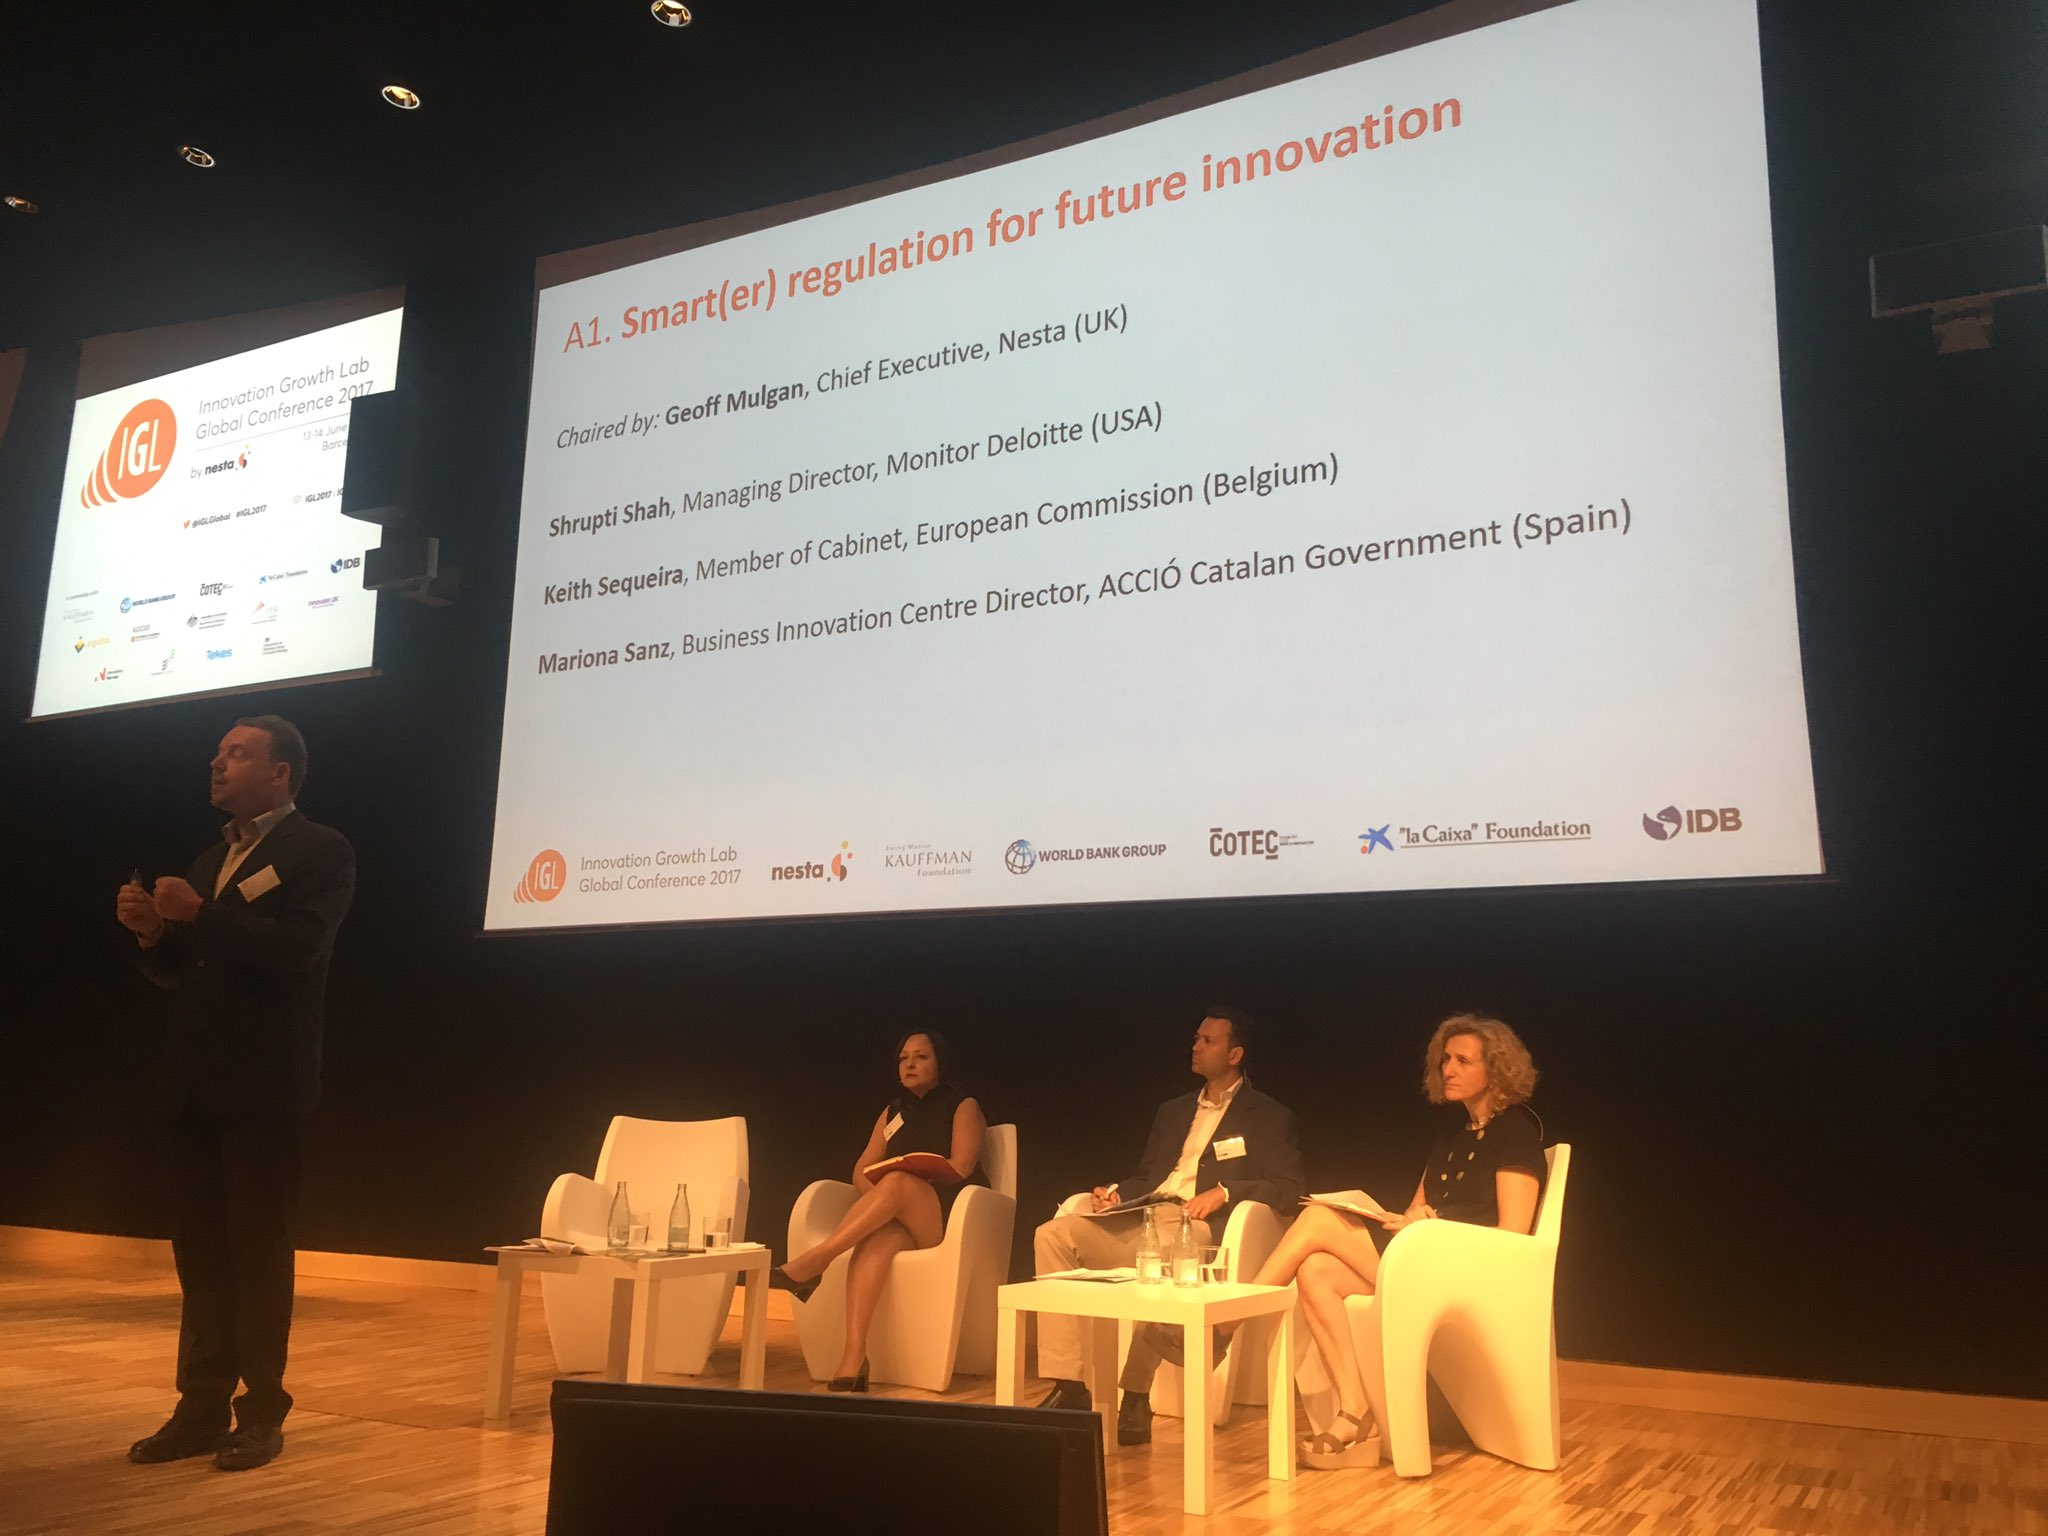 Increasing pace of technological change and regulating too soon, or too late: discussing smarter regulation for future innovation #IGL2017 https://t.co/3WeRrXeTaz